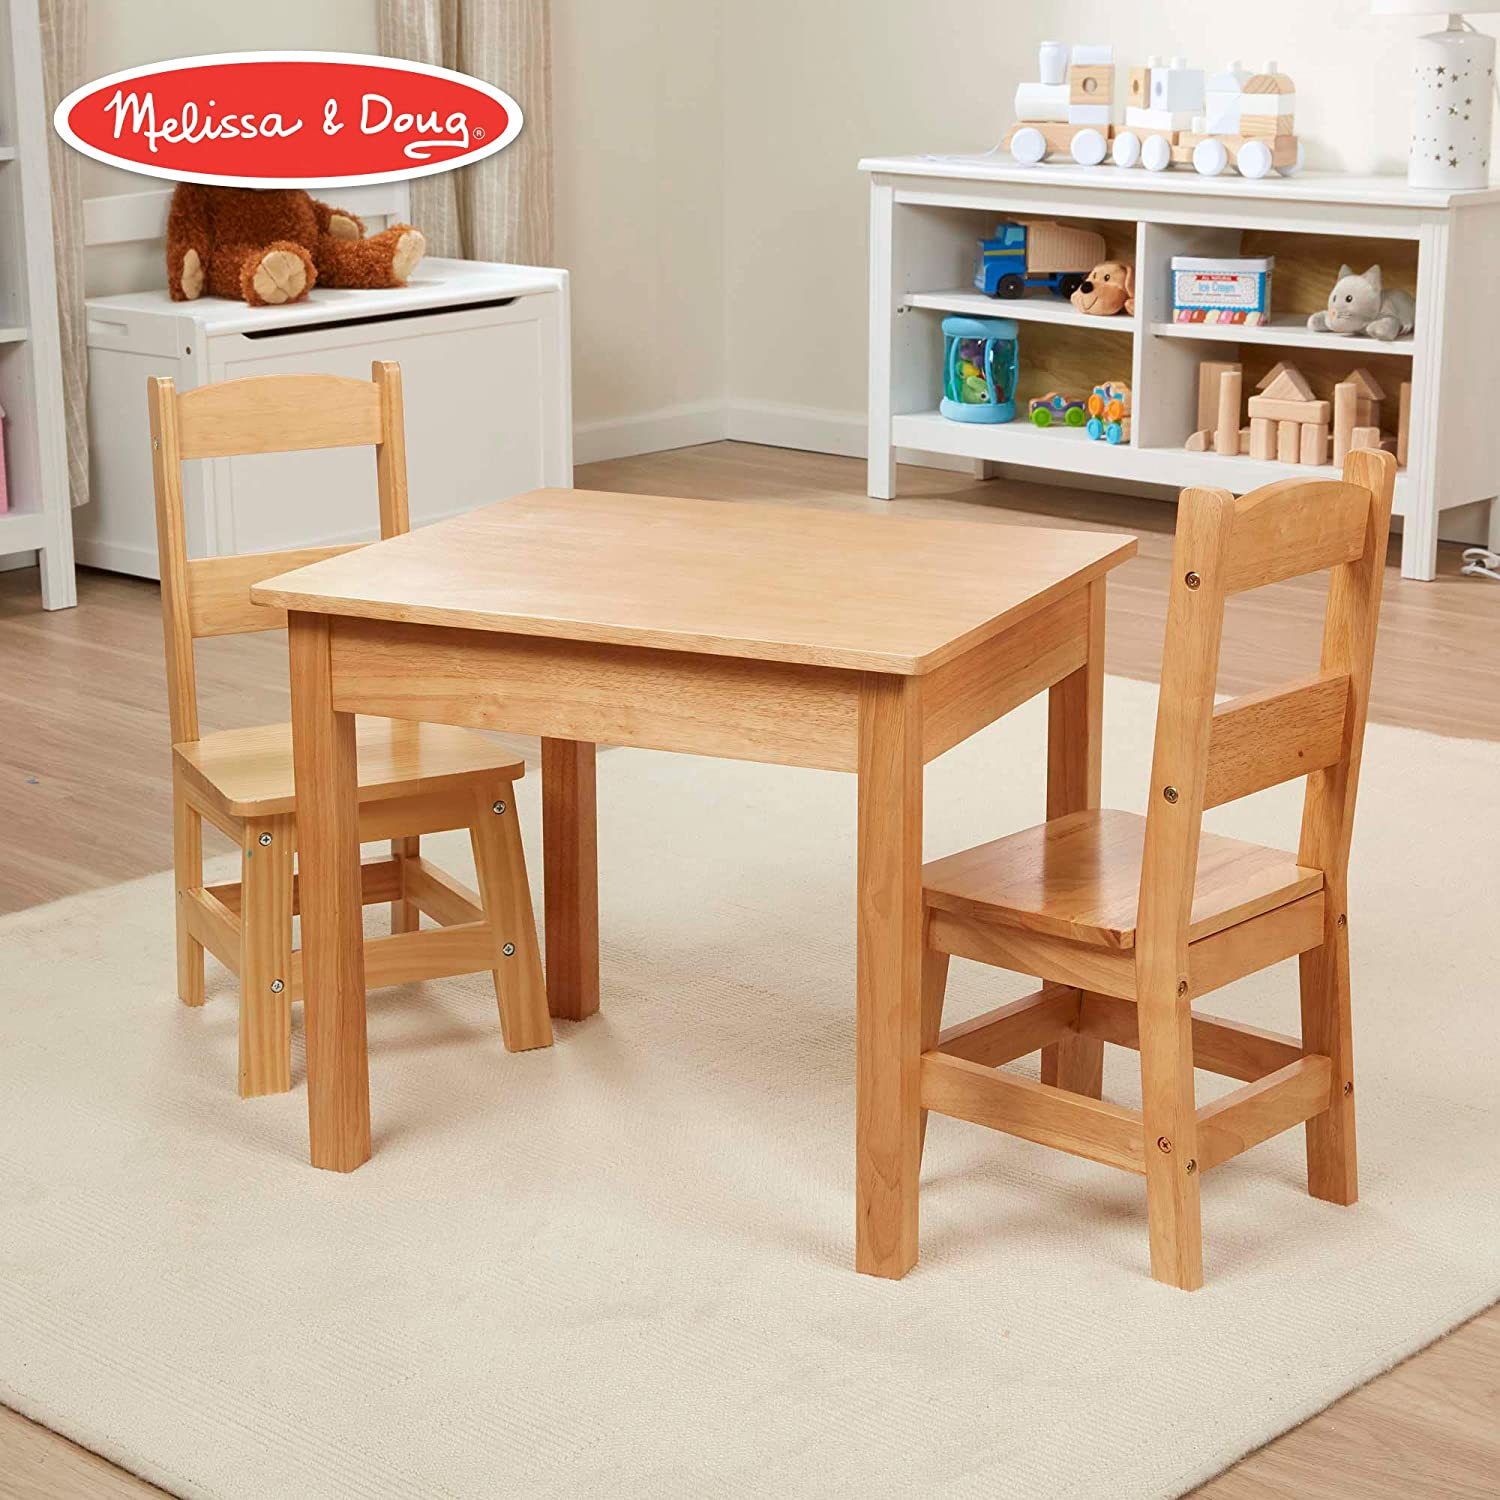 Incredible Melissa Doug Solid Wood Table Chairs Kids Furniture Sturdy Wooden Furniture 3 Piece Set 20 H X 23 5 W X 20 5 L Interior Design Ideas Jittwwsoteloinfo